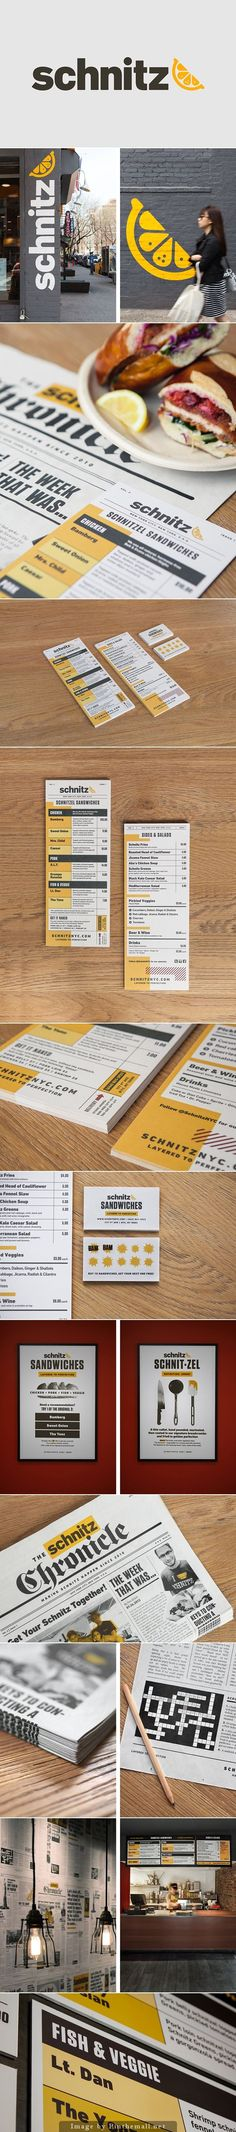 Schnitz Branding, Graphic Design, Print Design By Tag Collective - created via http://pinthemall.net: